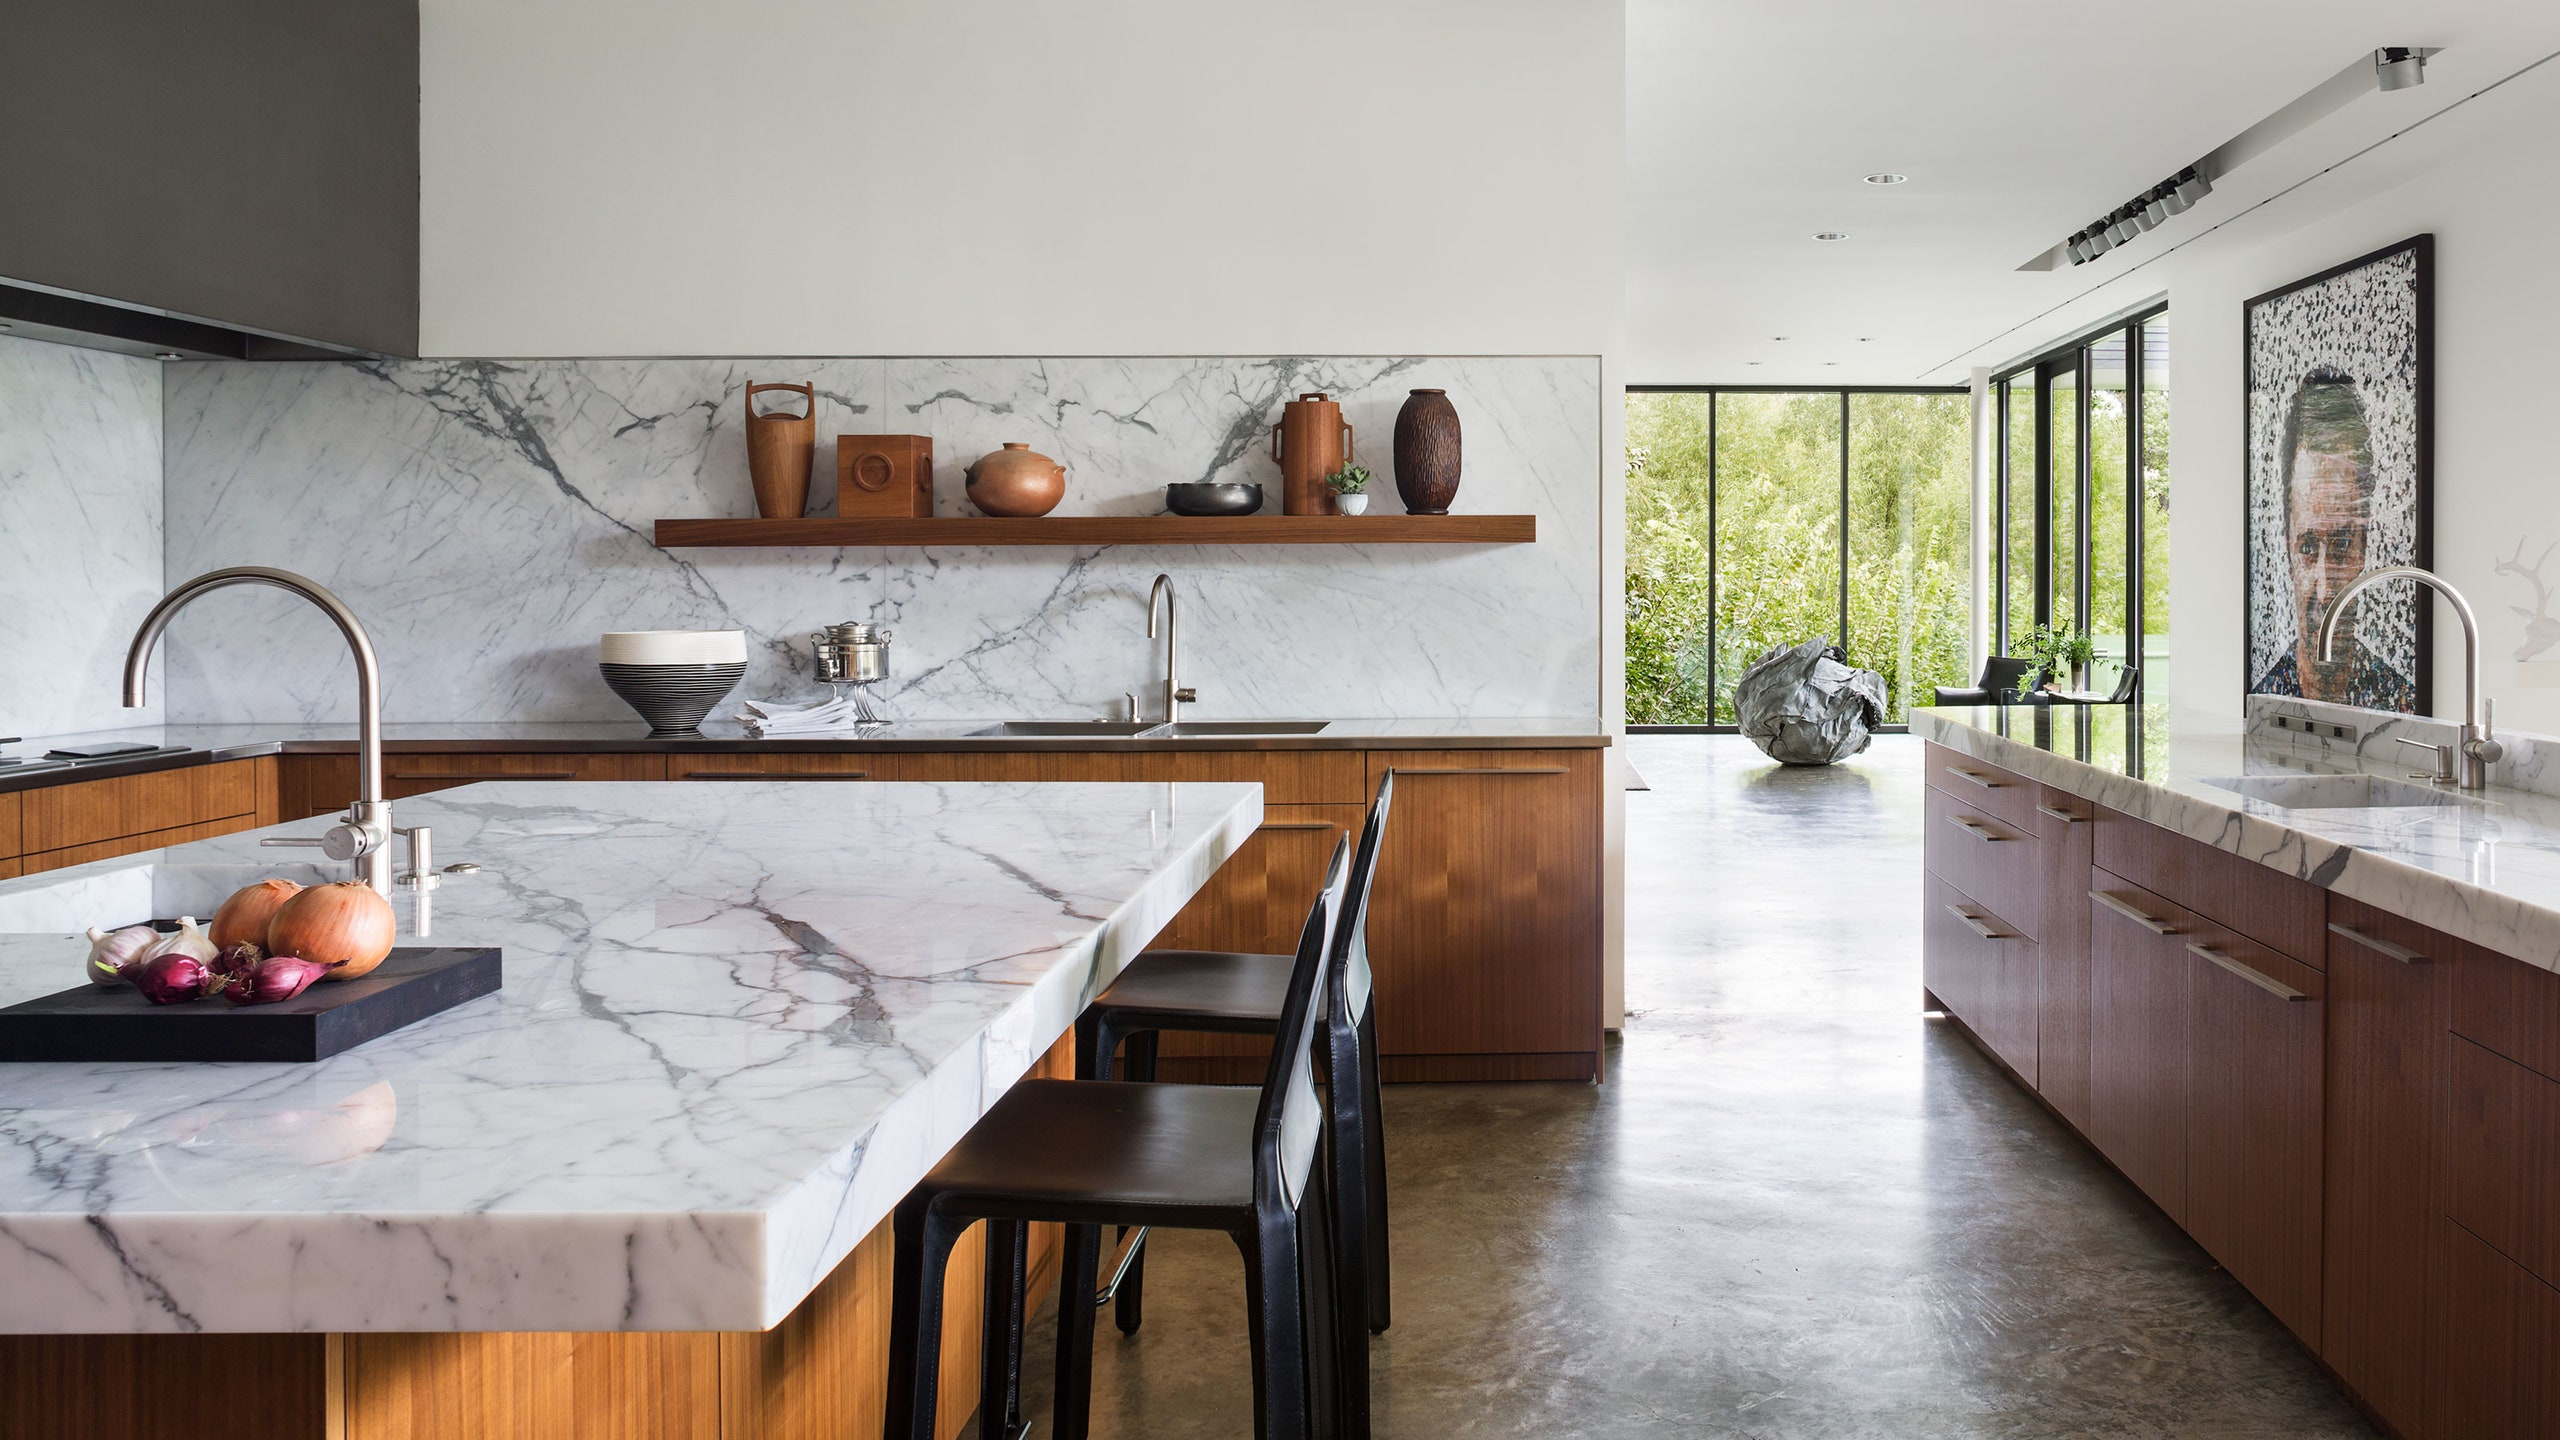 The Material of Choice: 7 Things to Keep in Mind About Granite Countertops